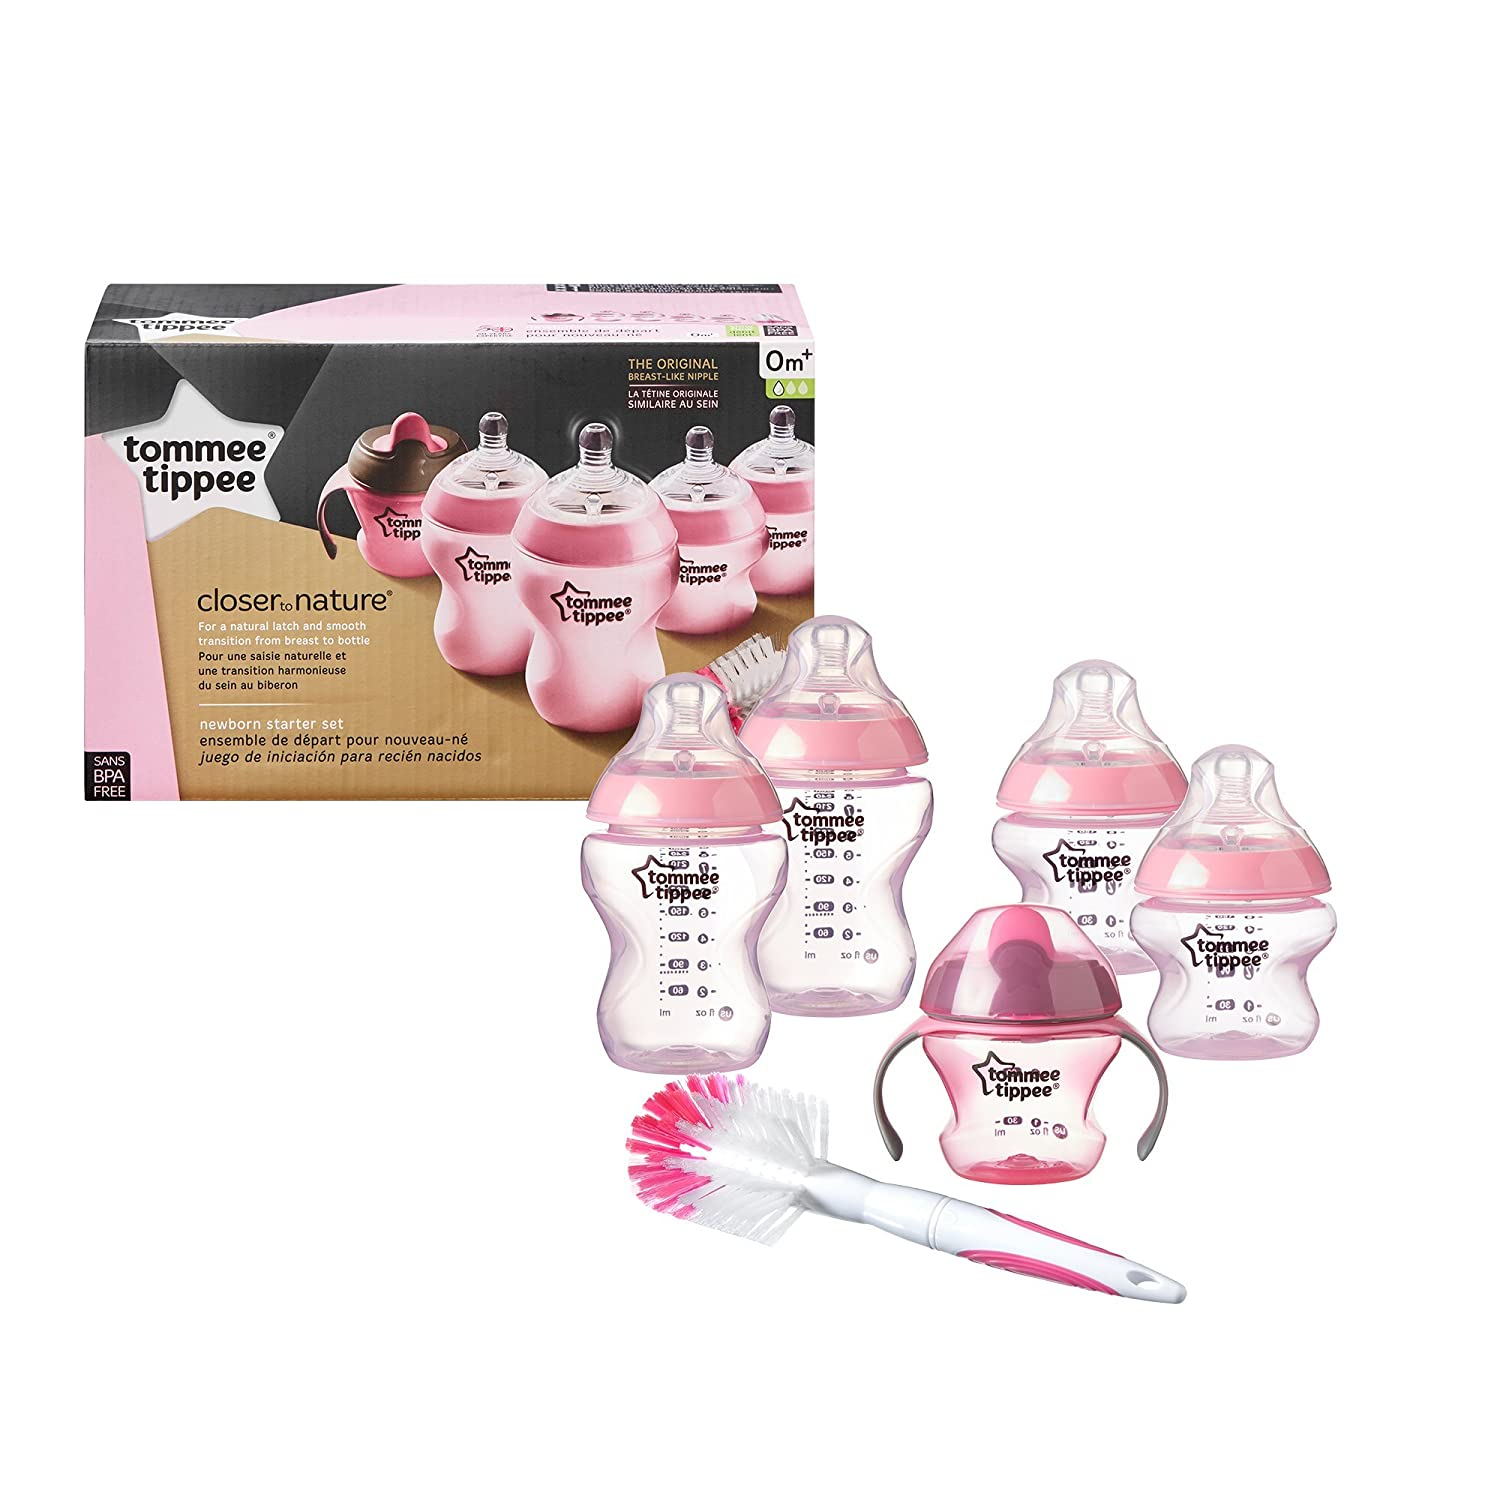 Tommee Tippee Closer to Nature Newborn Baby Bottle Starter Set, Includes Breast-Like Nipple...